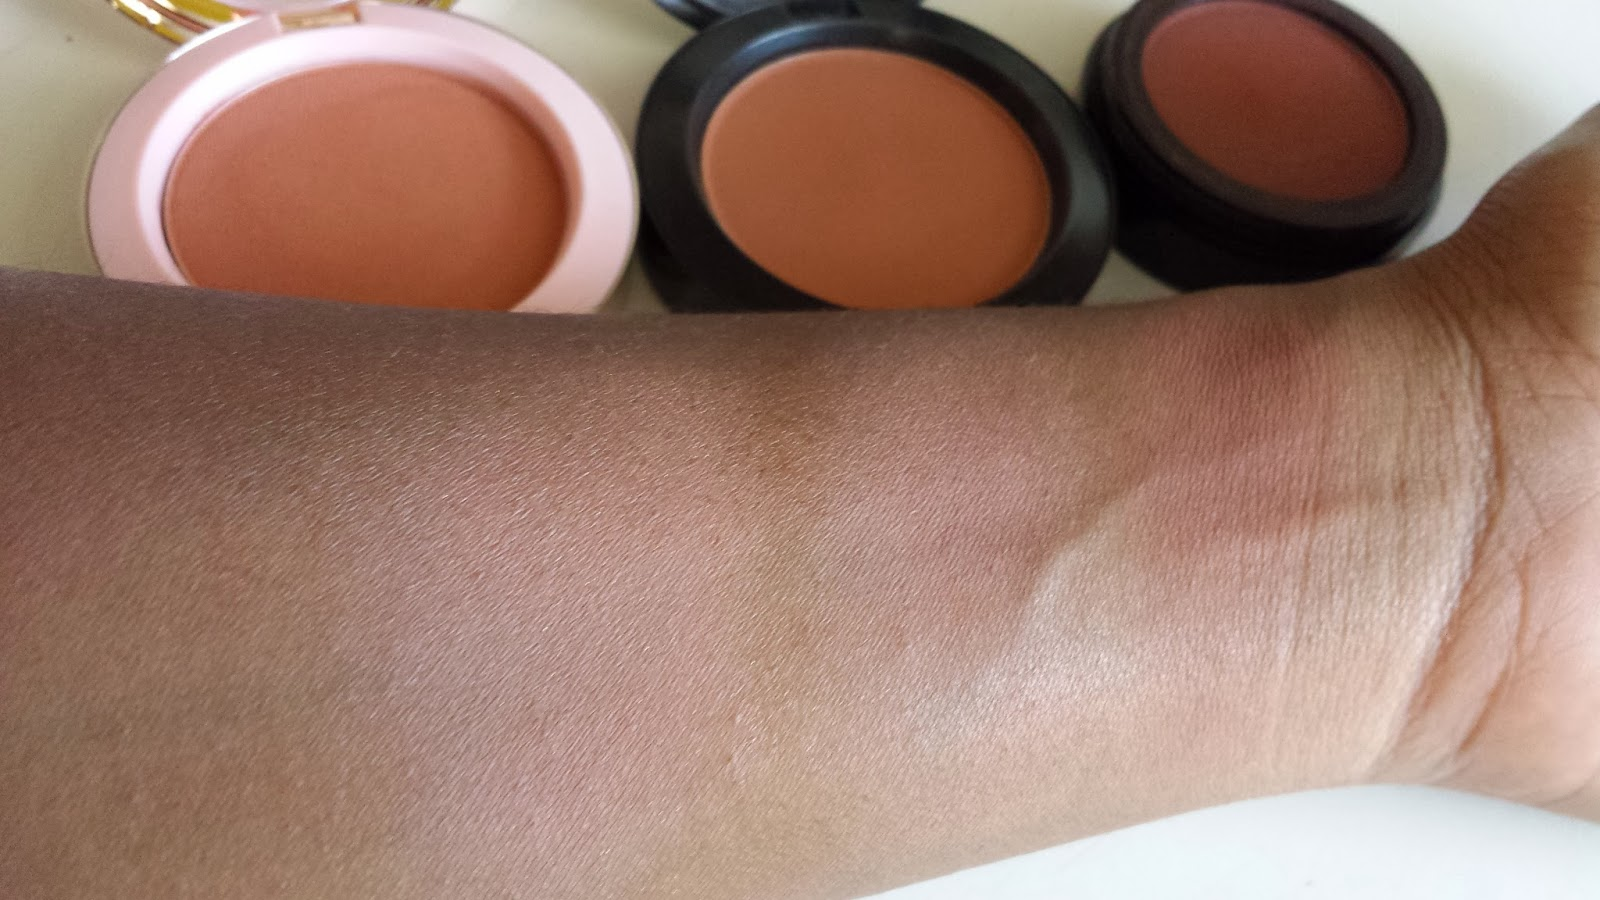 Nude blush swatch comparison - www.modenmakeup.com